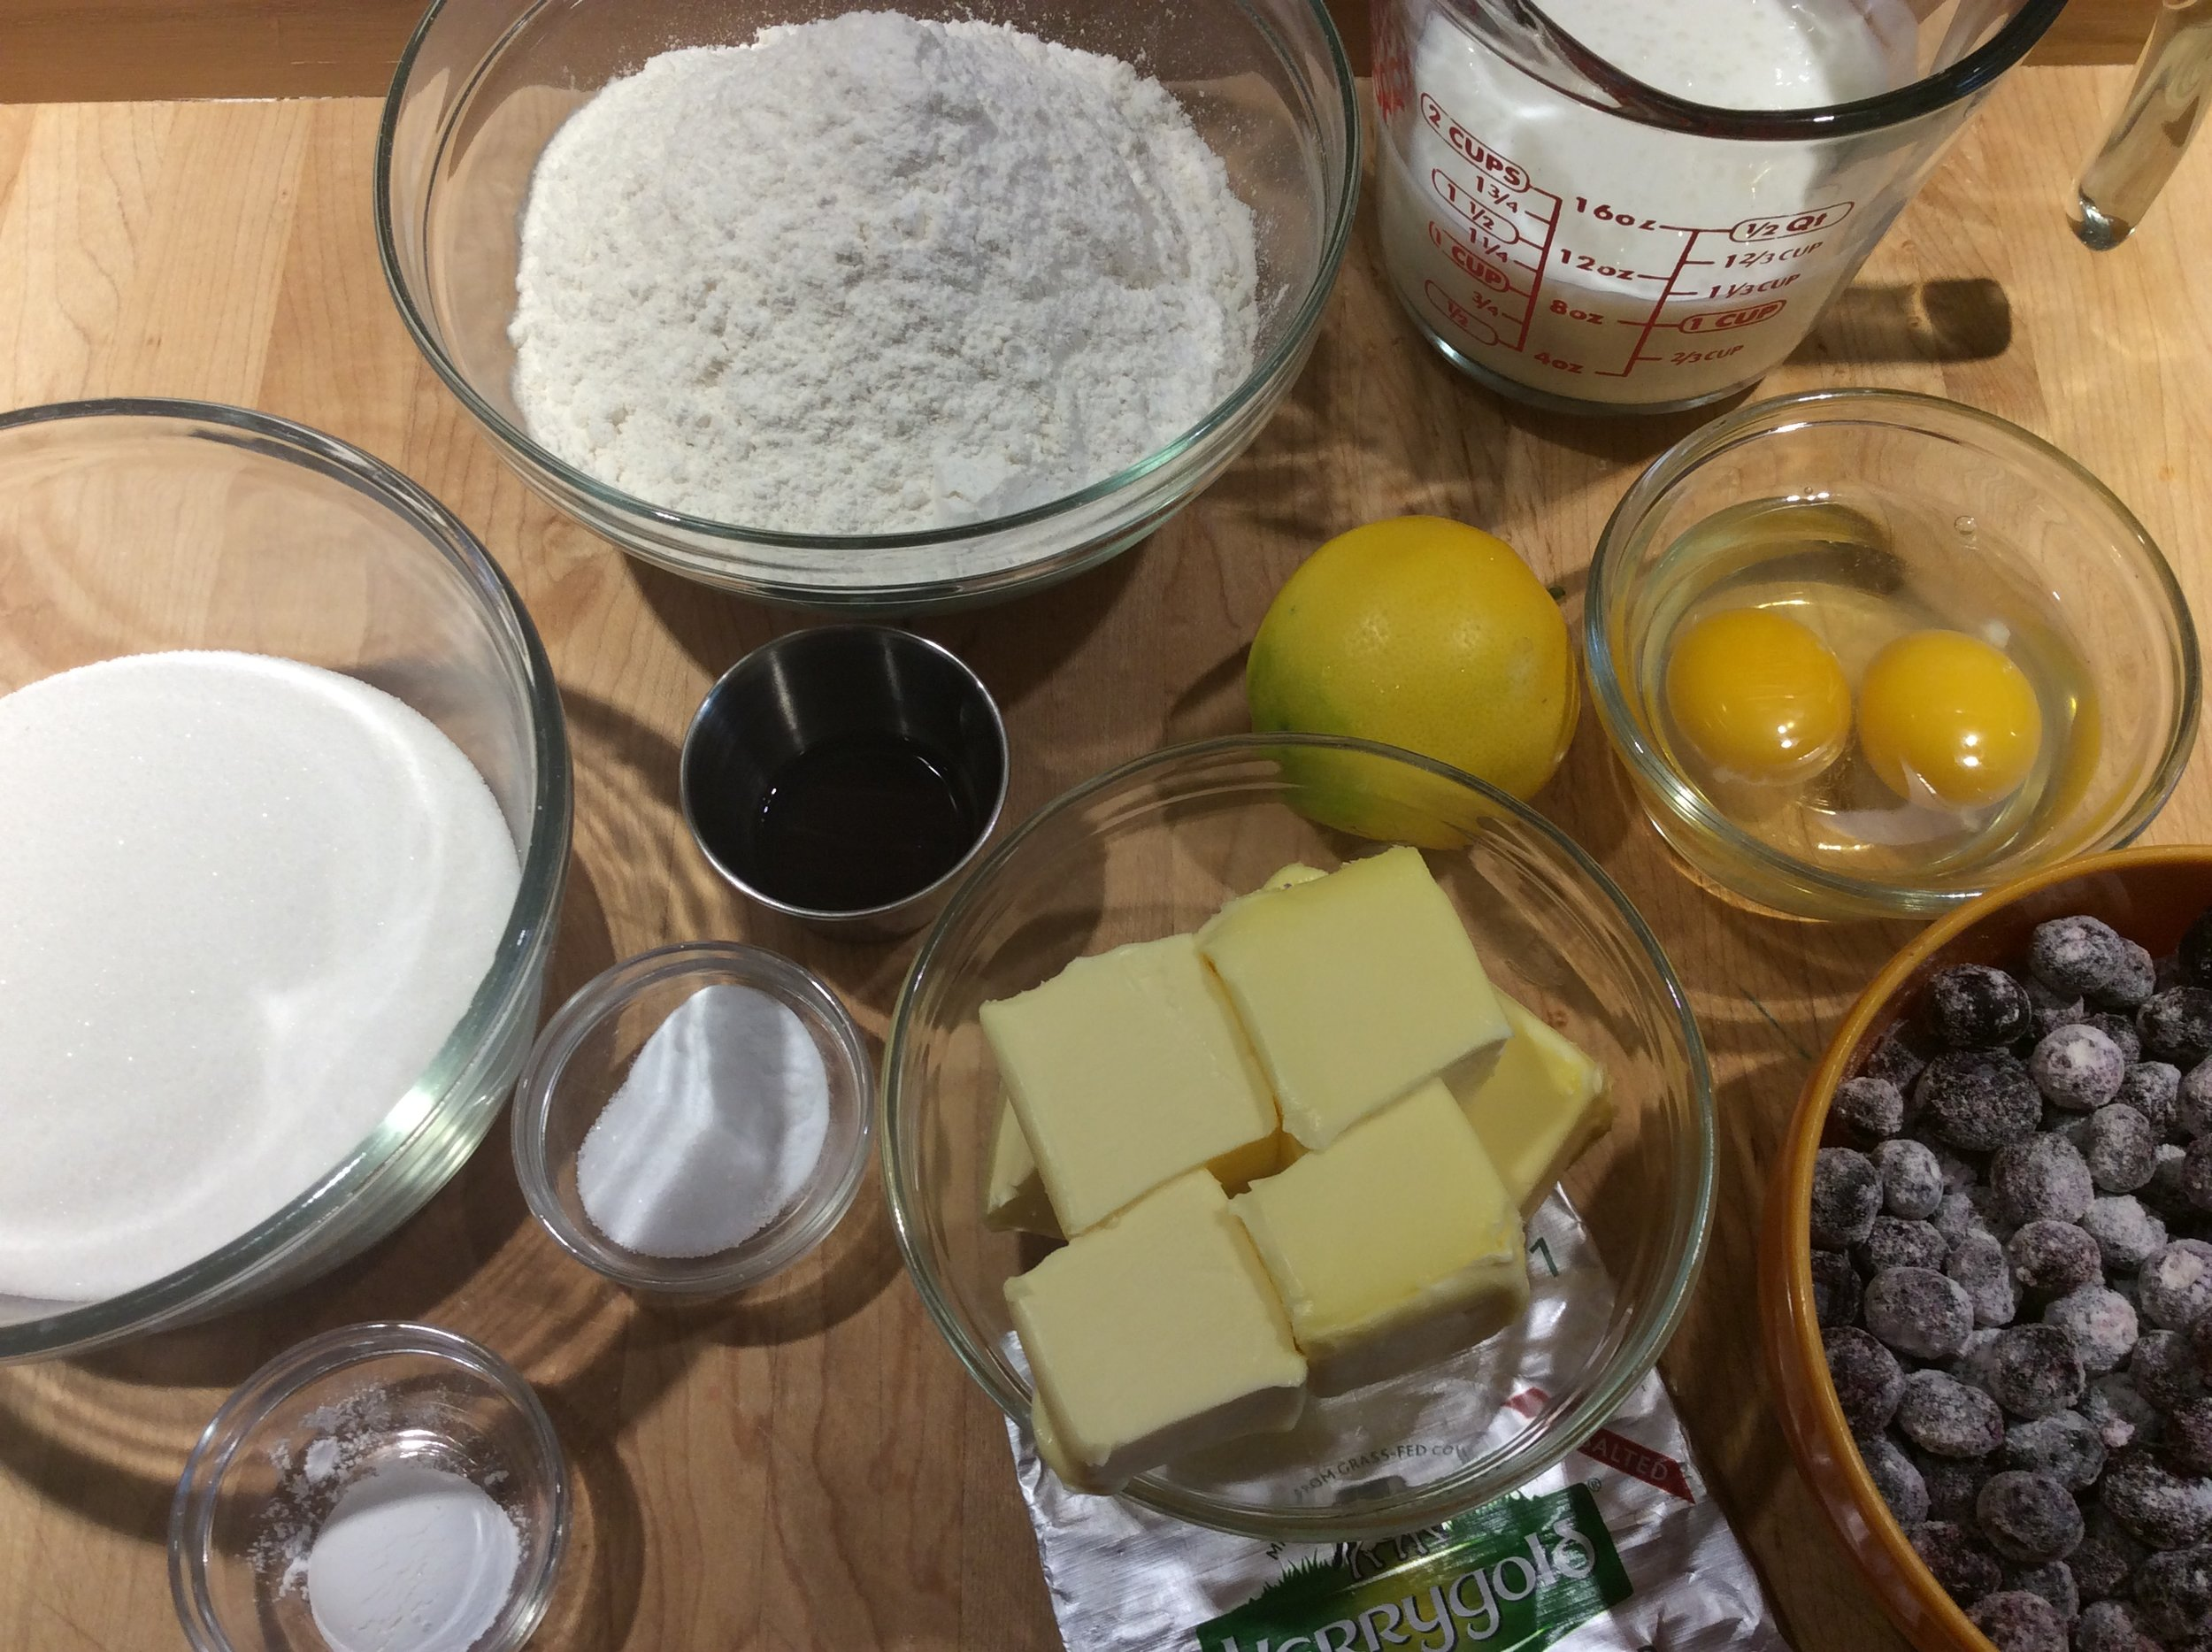 Blueberry Muffin Mise en Place - The blueberries are tossed in 2 Tablespoons of flour (extra flour) and then placed in the freezer until needed. They need to stay frozen until needed.